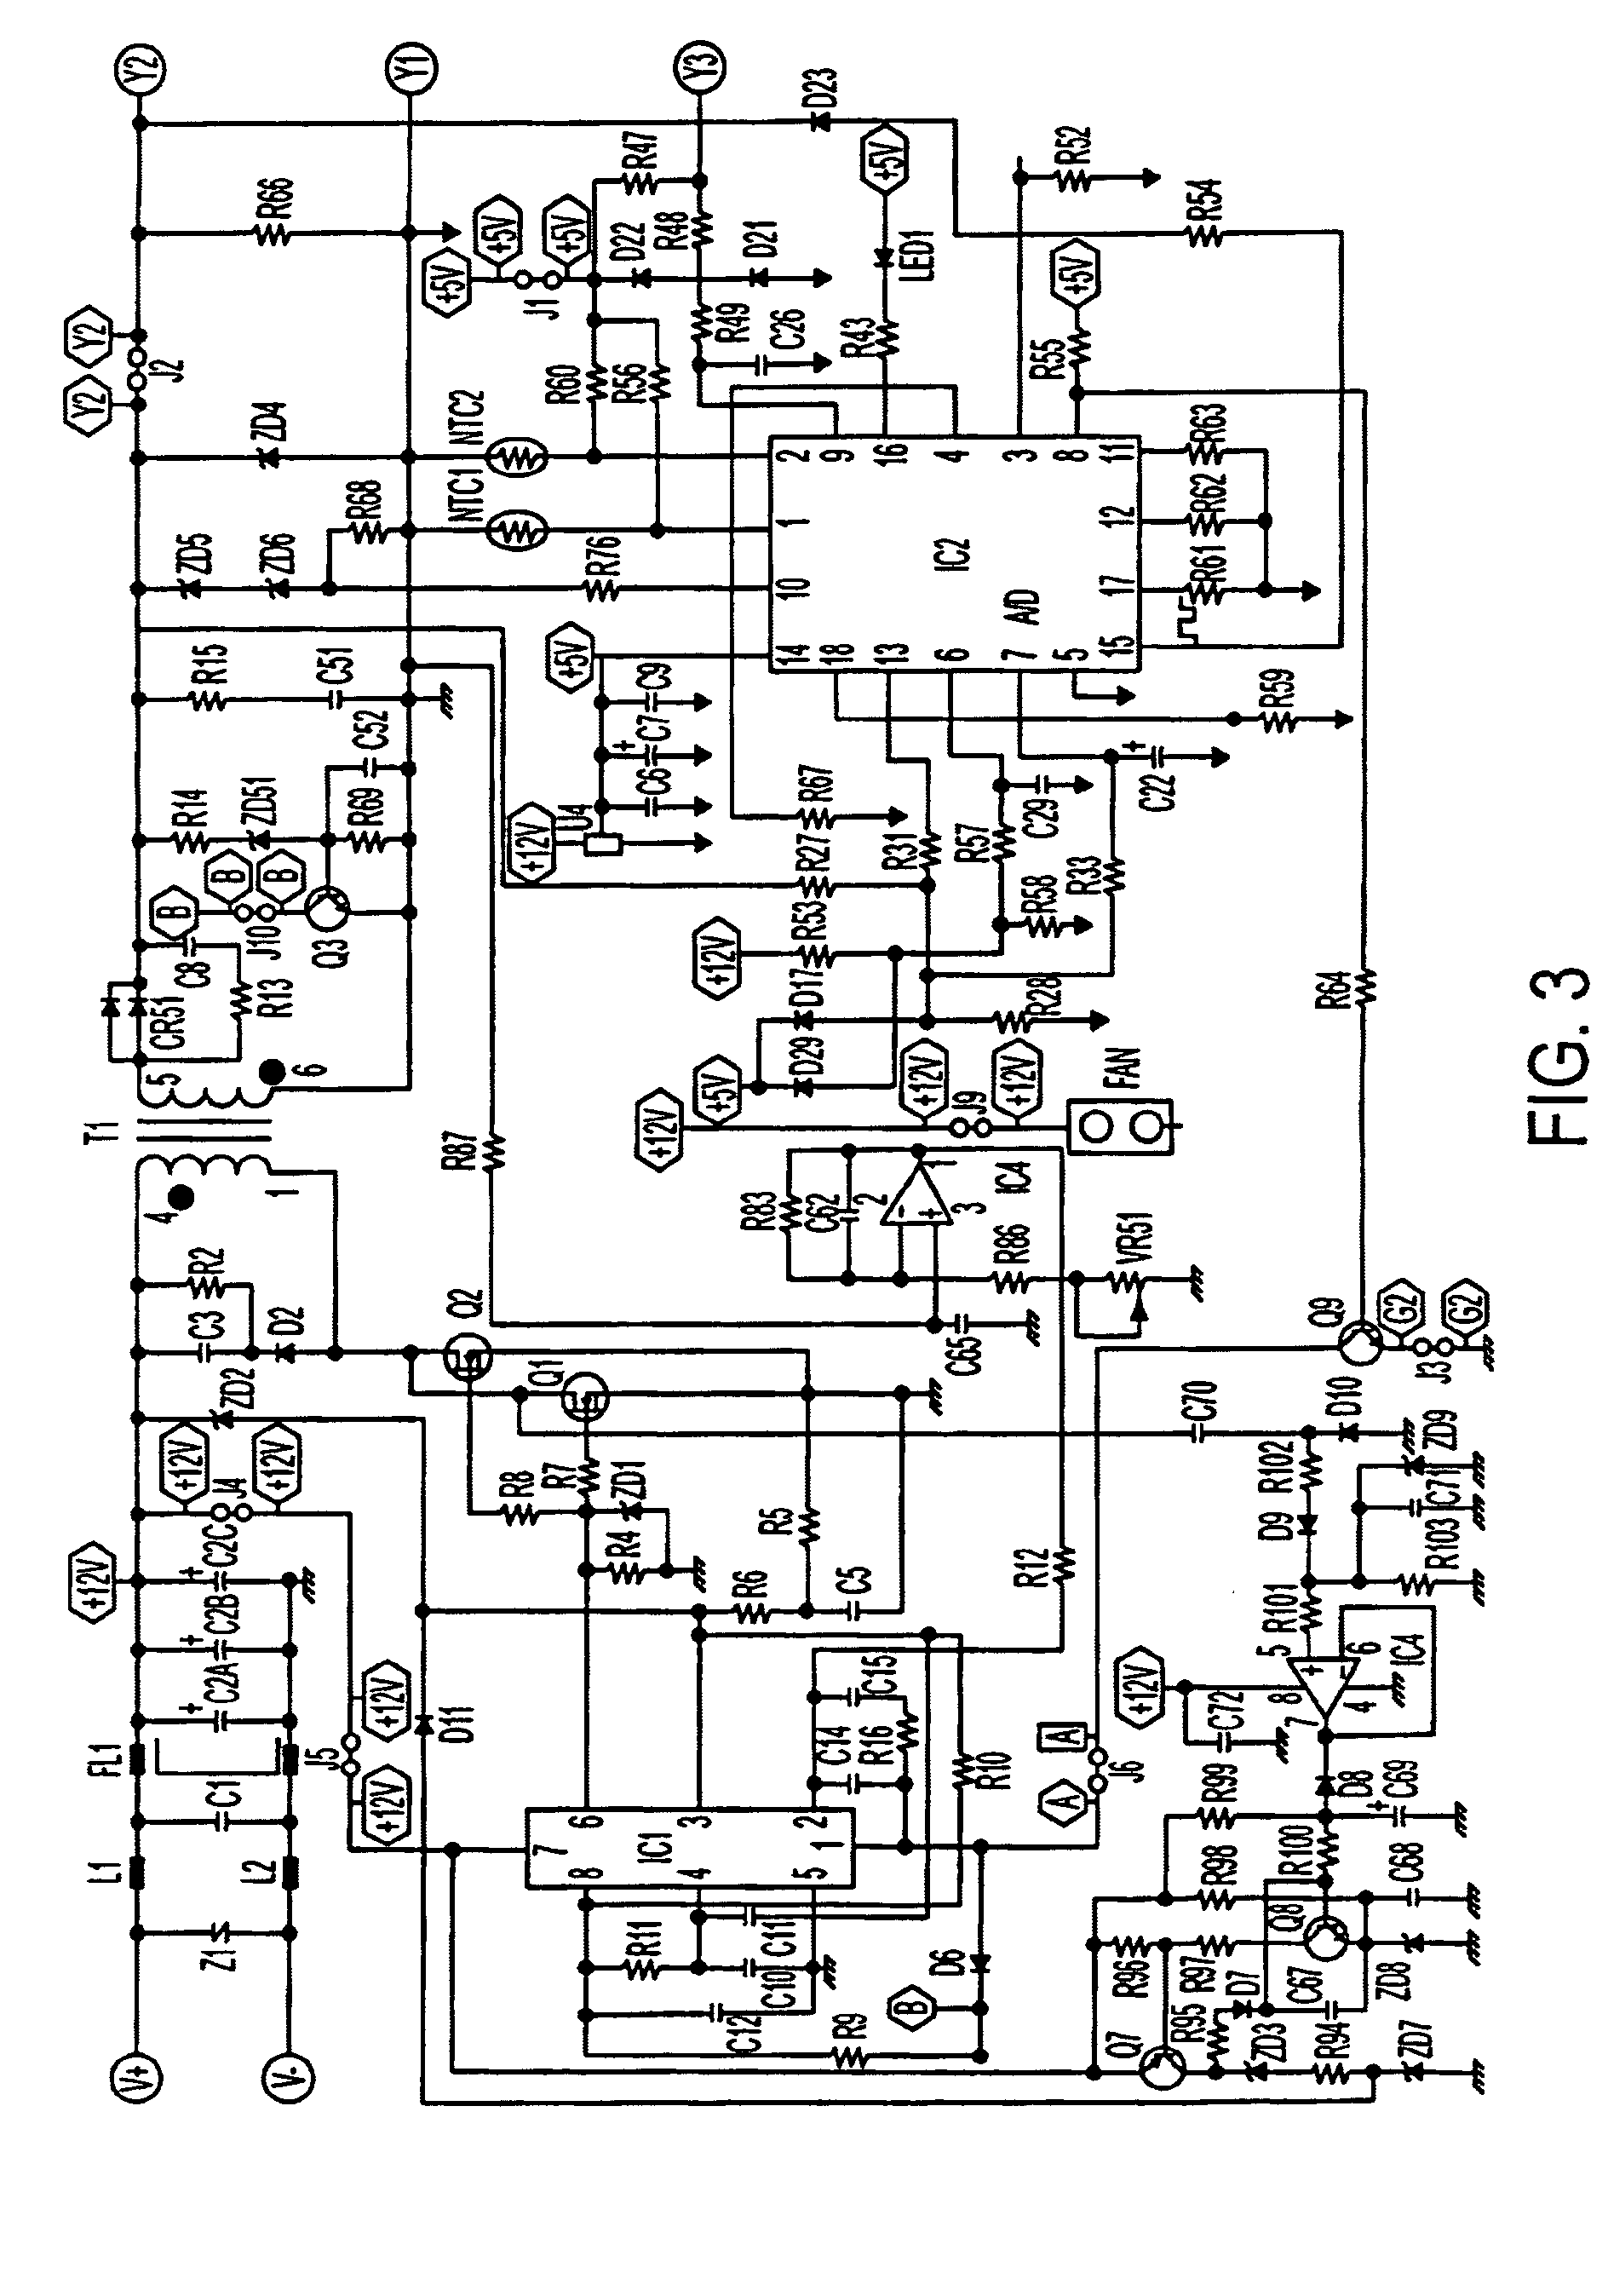 Makita Battery Charger Wiring Diagram Diagrams Trickle Patent Ep1523082a1 With Presence Circuit Marine